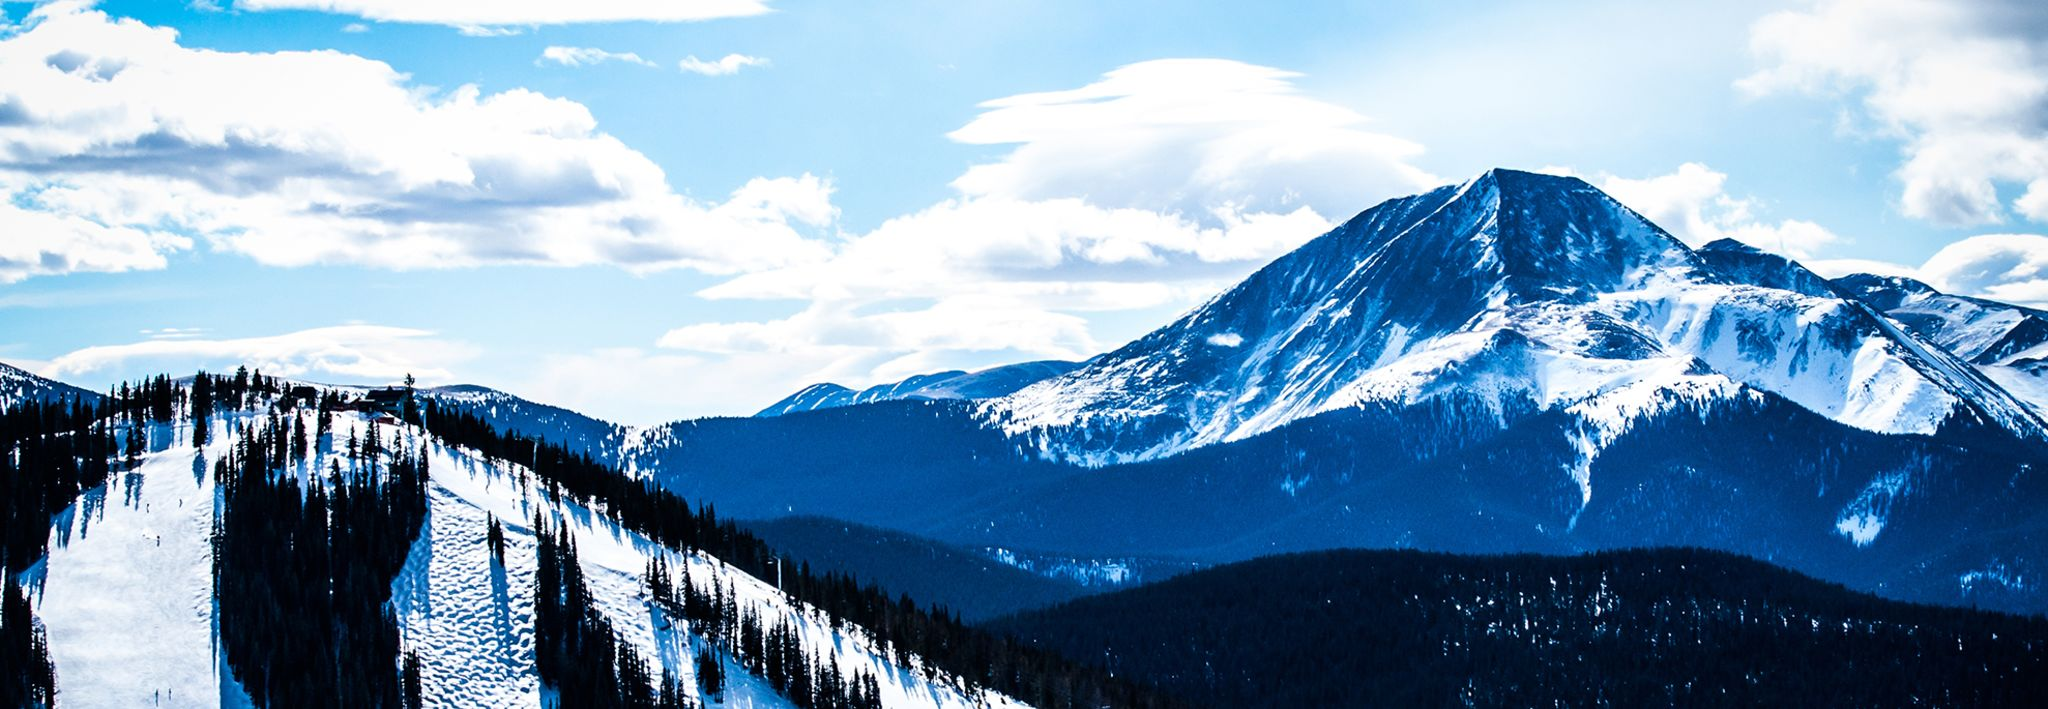 Many CCU students spend their free time in the winter skiing or snowboarding at Keystone resort.